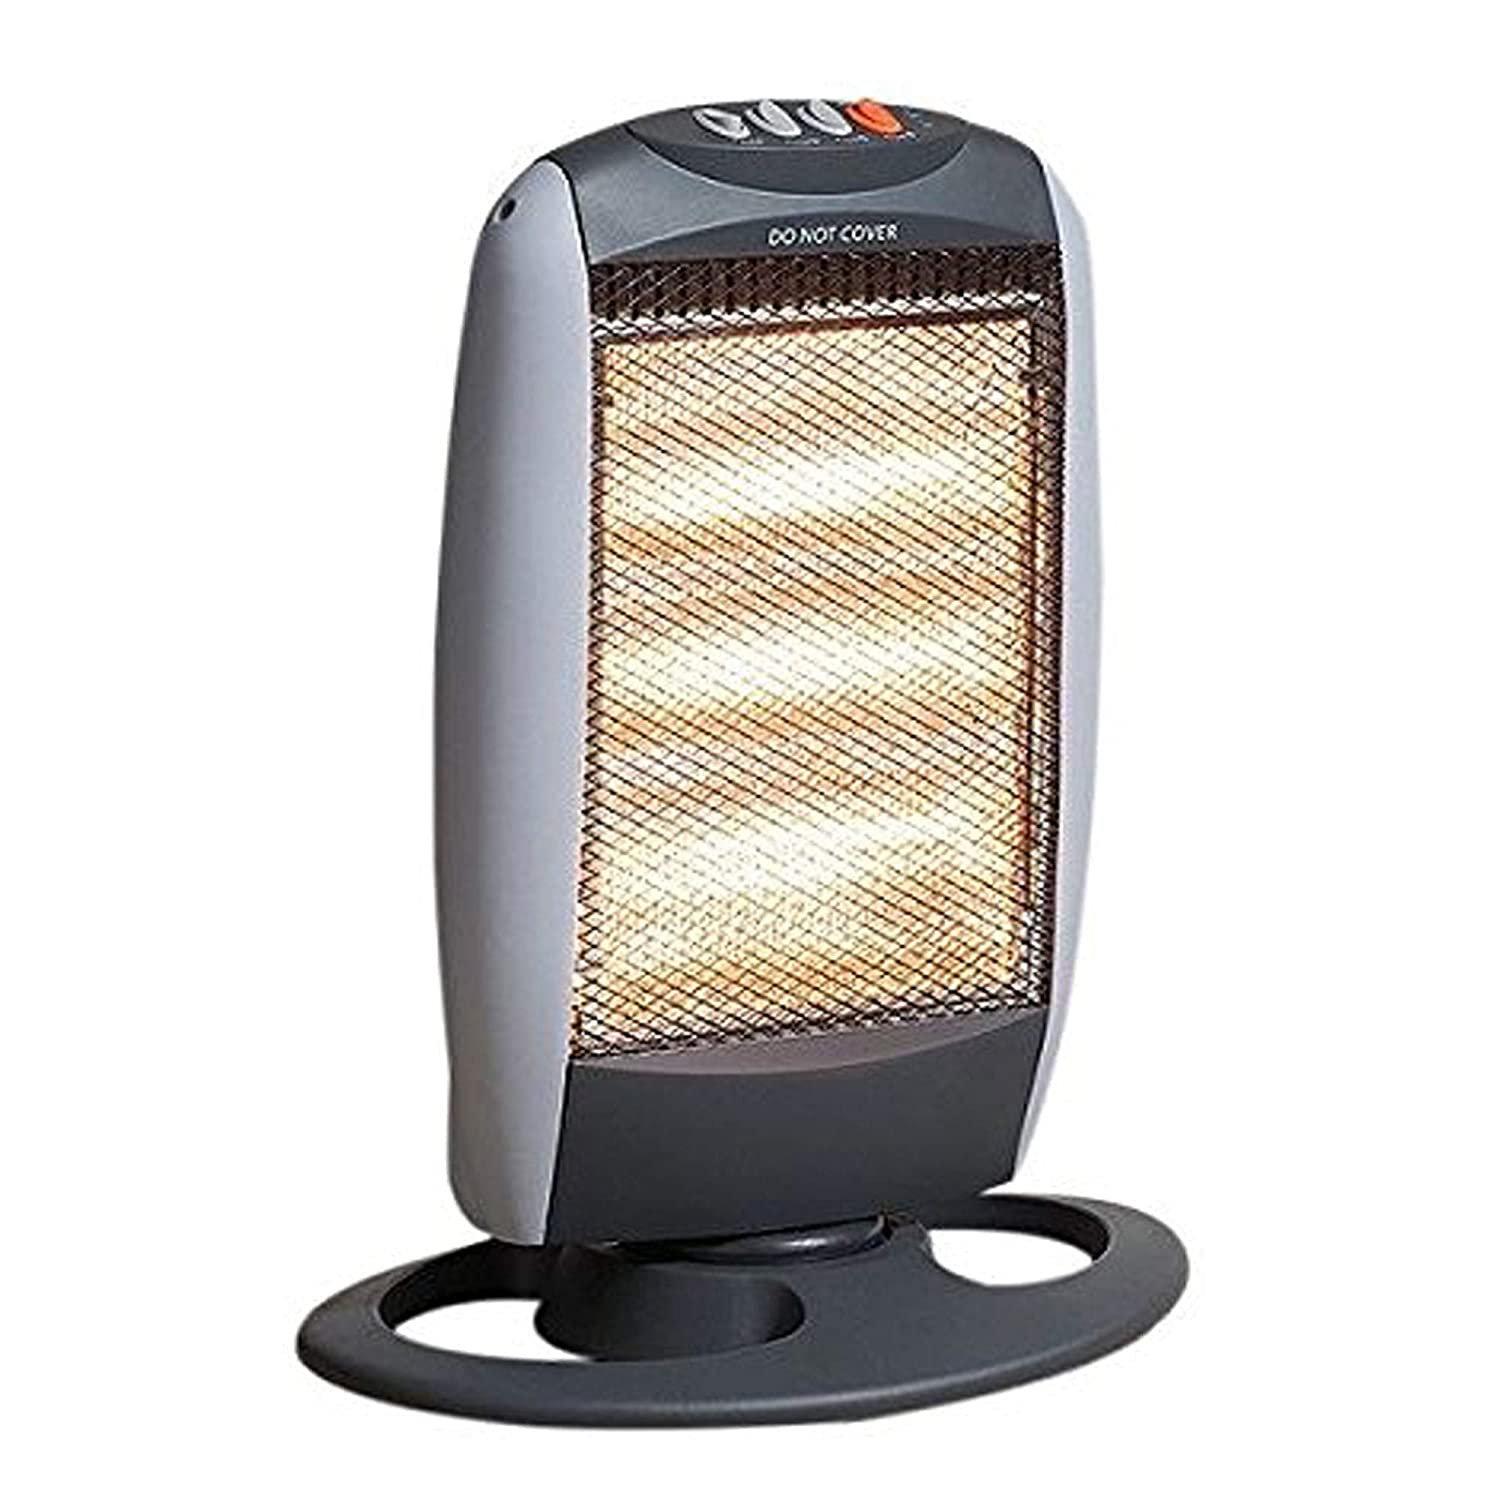 FB FunkyBuys® 1200-Watt Rotating Halogen Heater Portable Three Heat Settings Oscillating Warmer Heating Device Home Office Garden